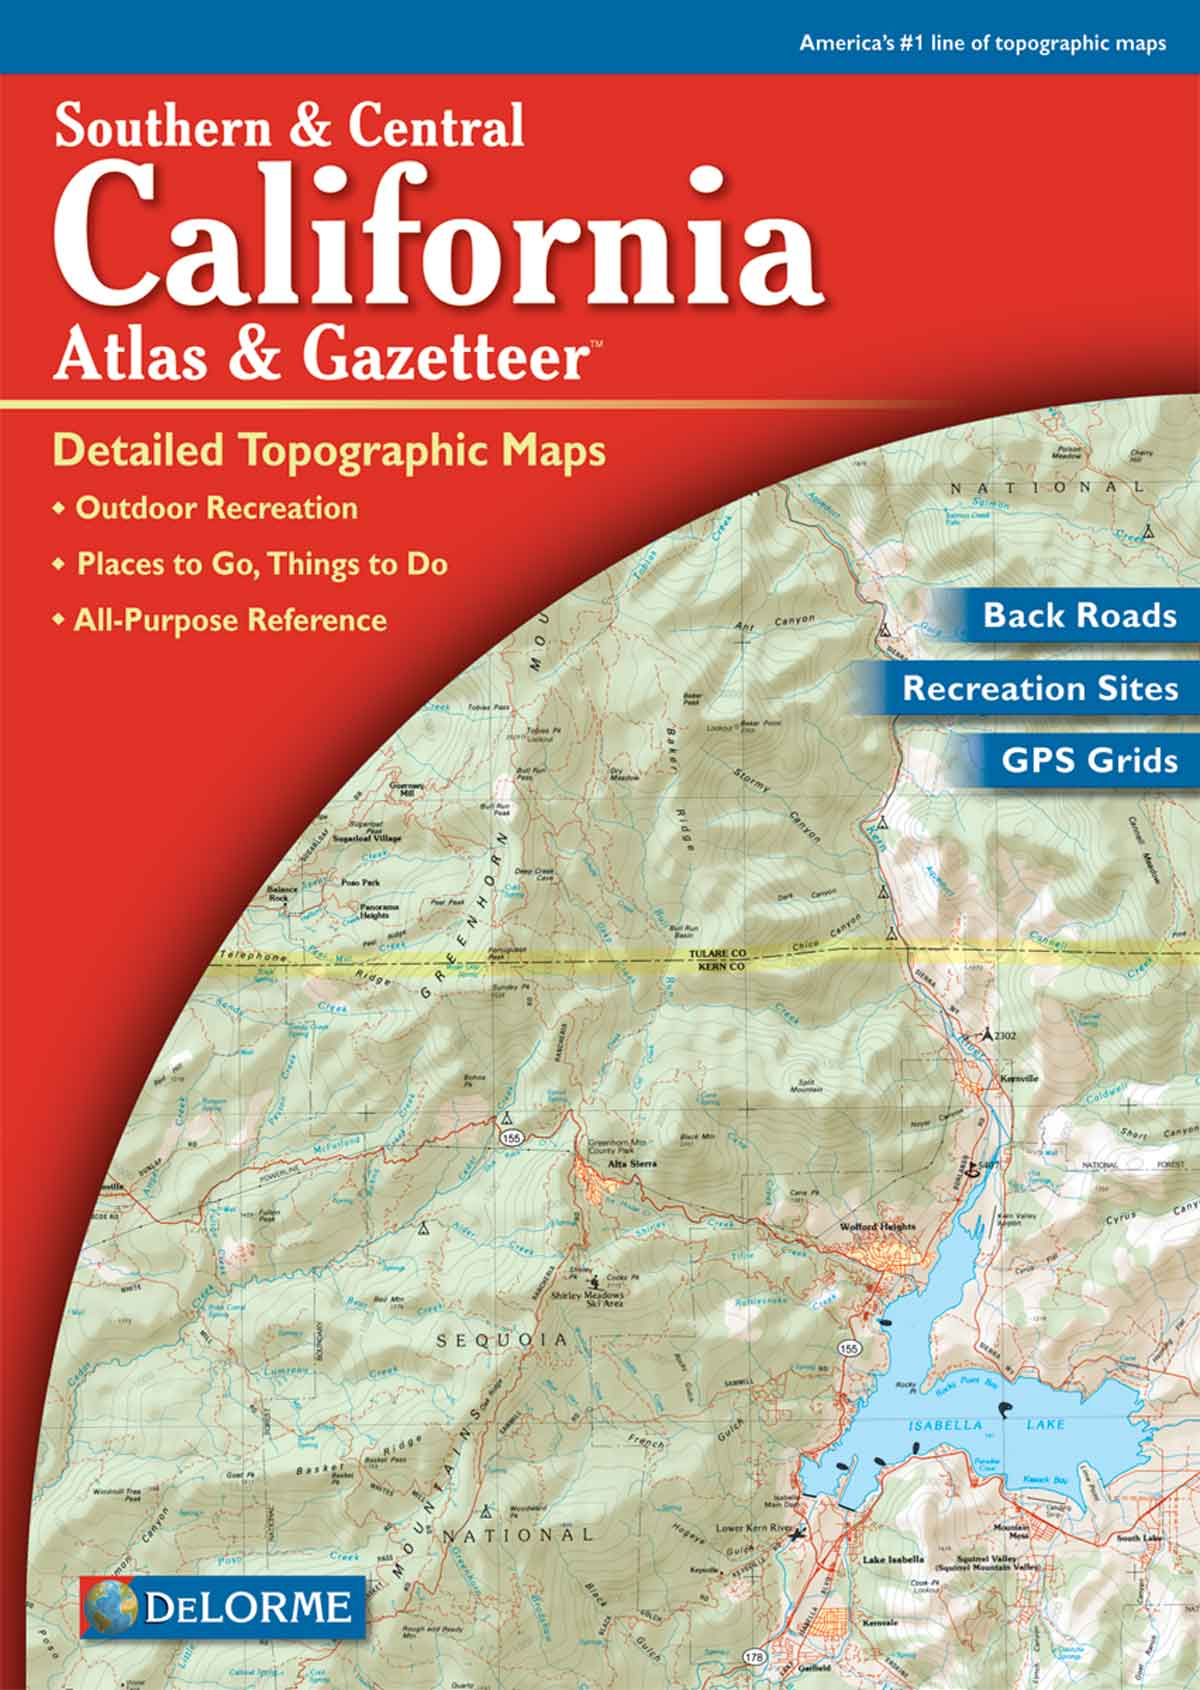 Southern California DeLorme Atlas  Gazetteer W  Maps Free Maps - Us topographic road map